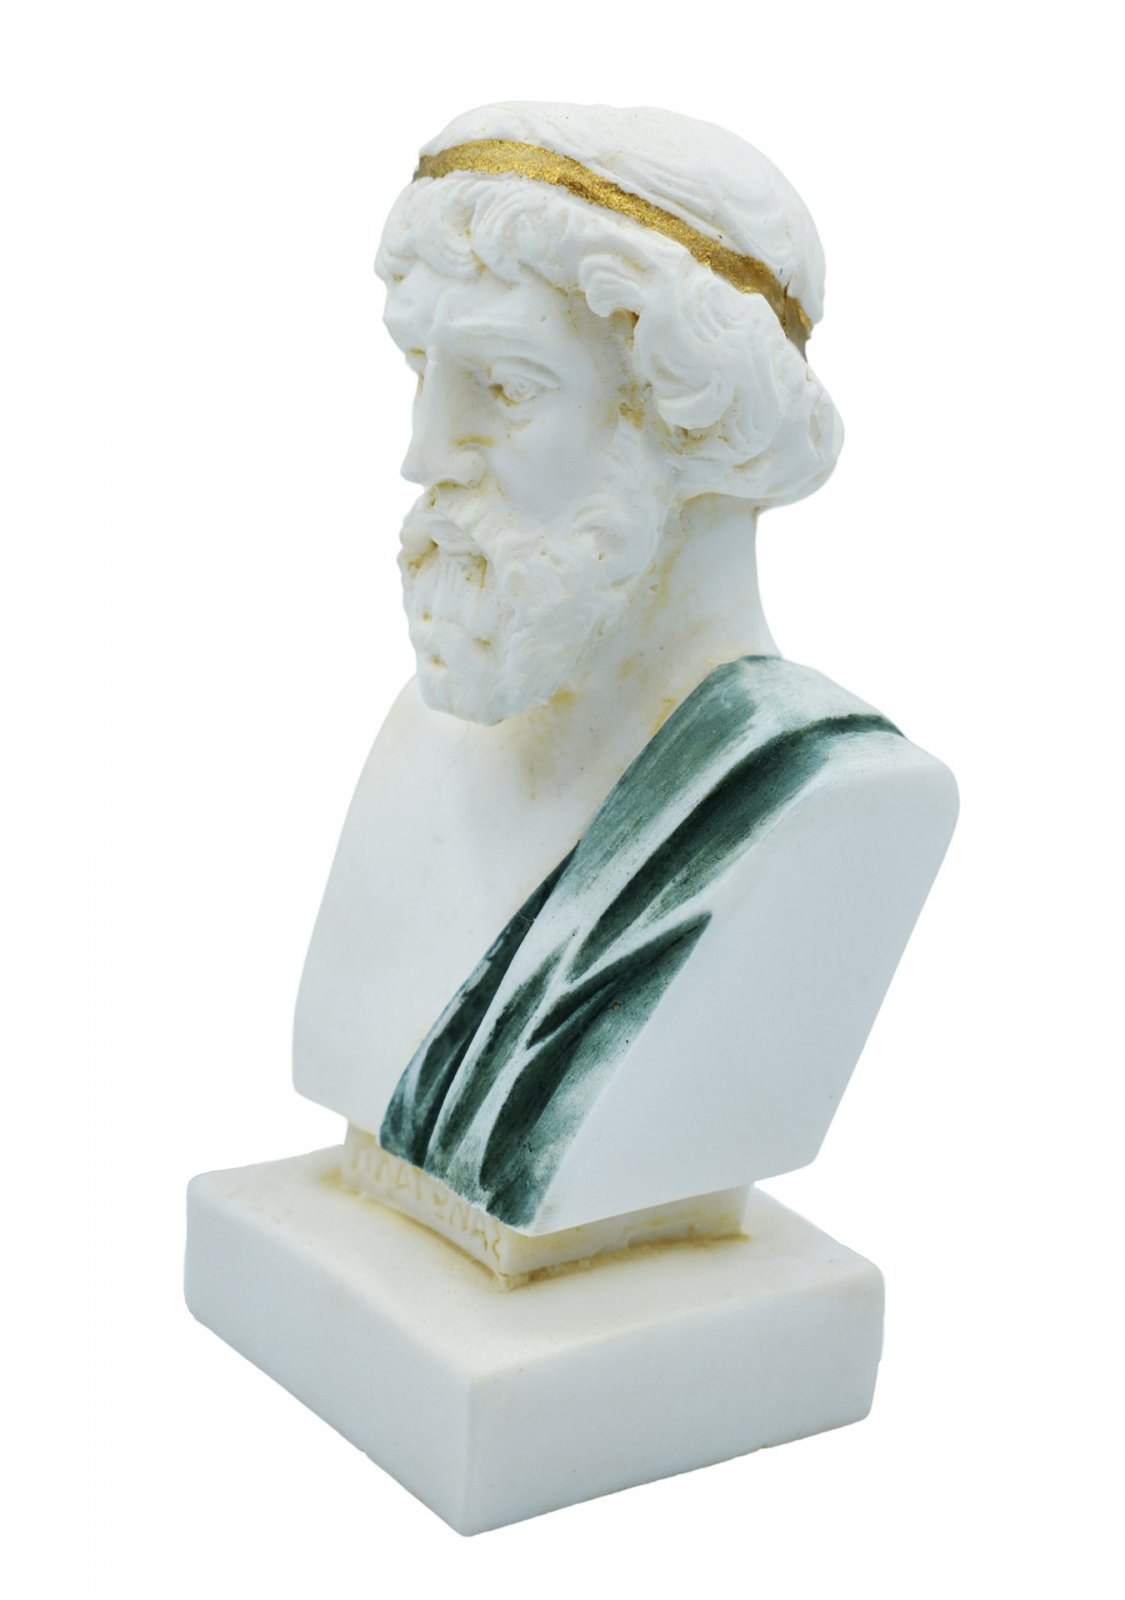 Plato greek alabaster bust statue with color and patina